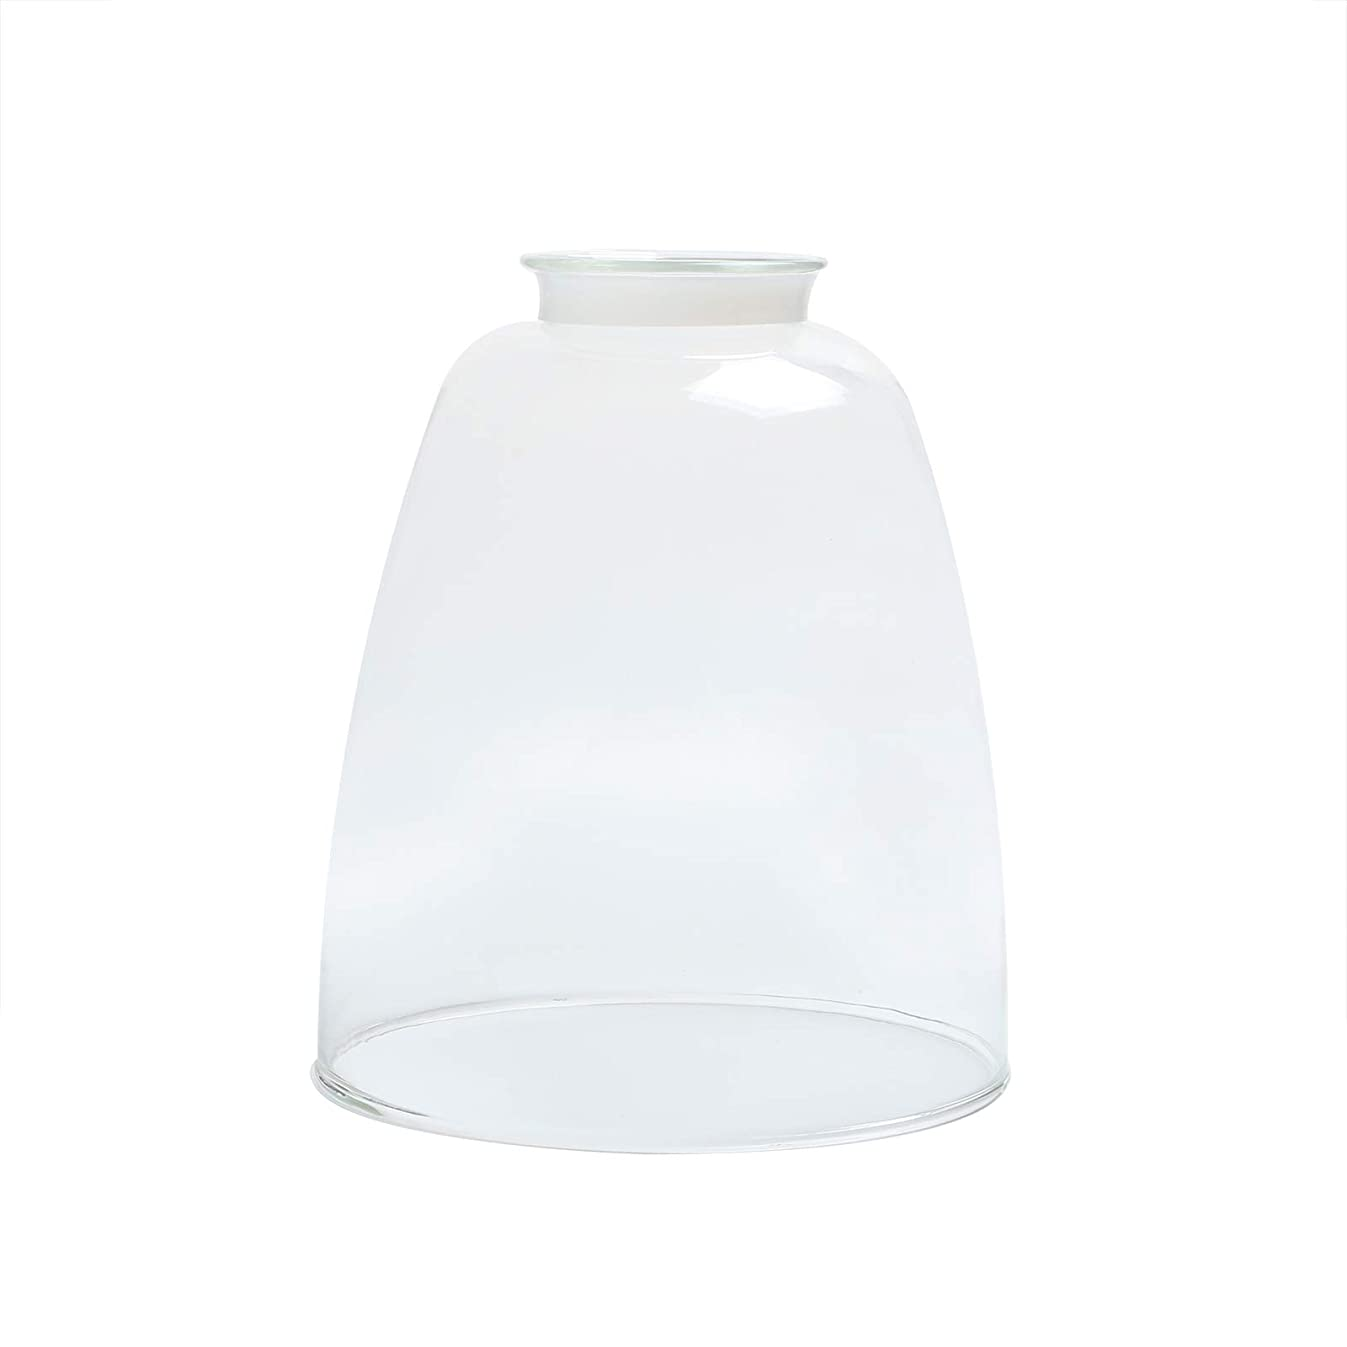 Permo Lighting Fixture Replacement Oval Cone Clear Glass Shade